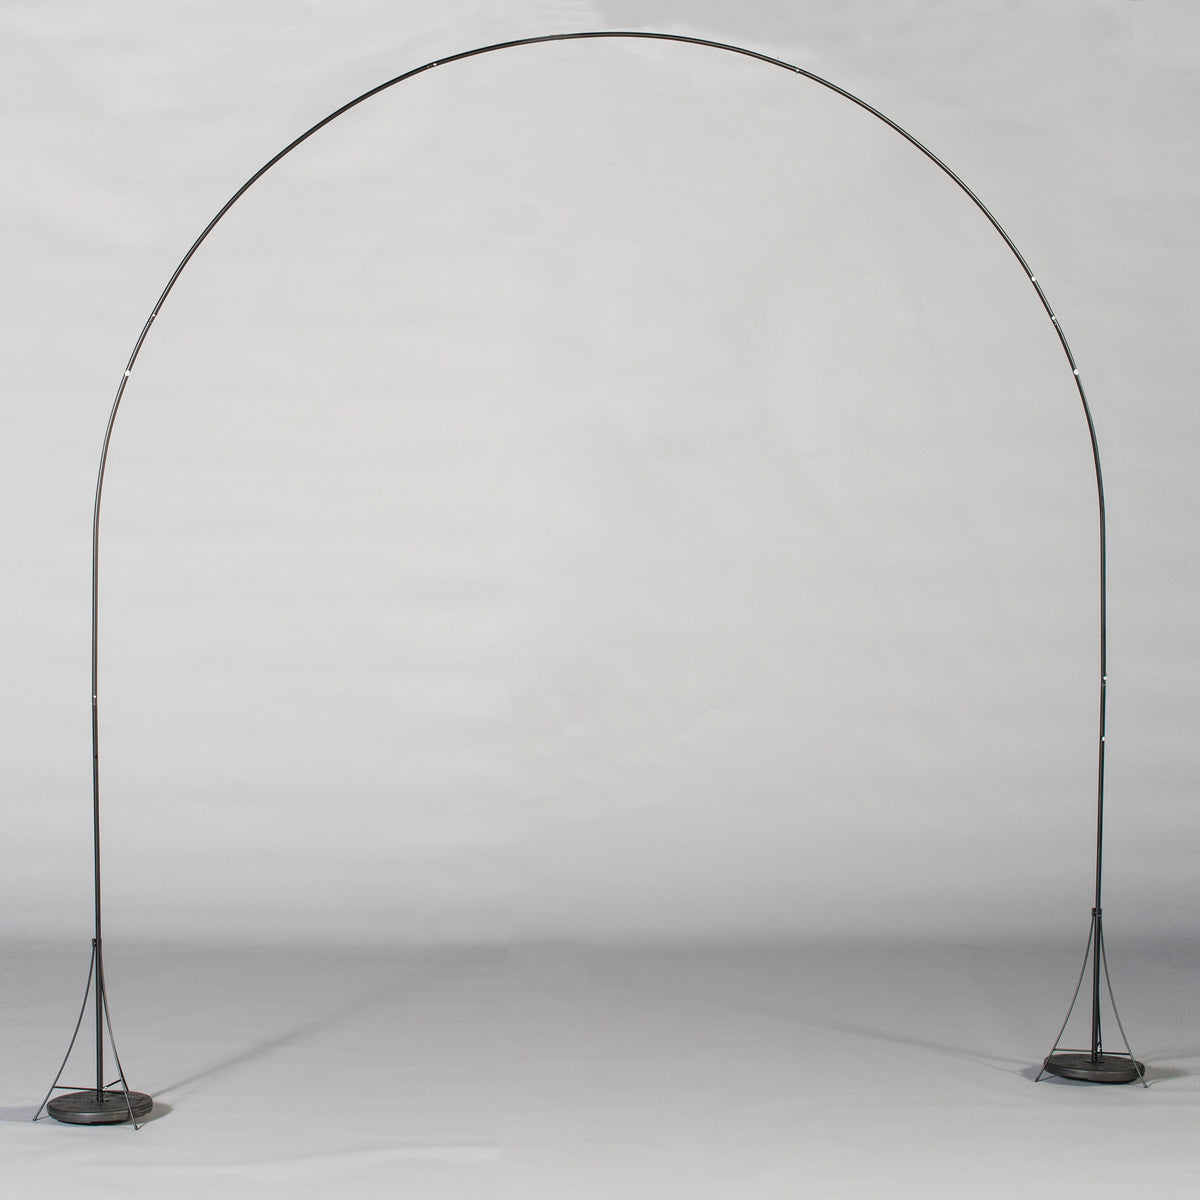 9 ft. Radiant Arch Frame